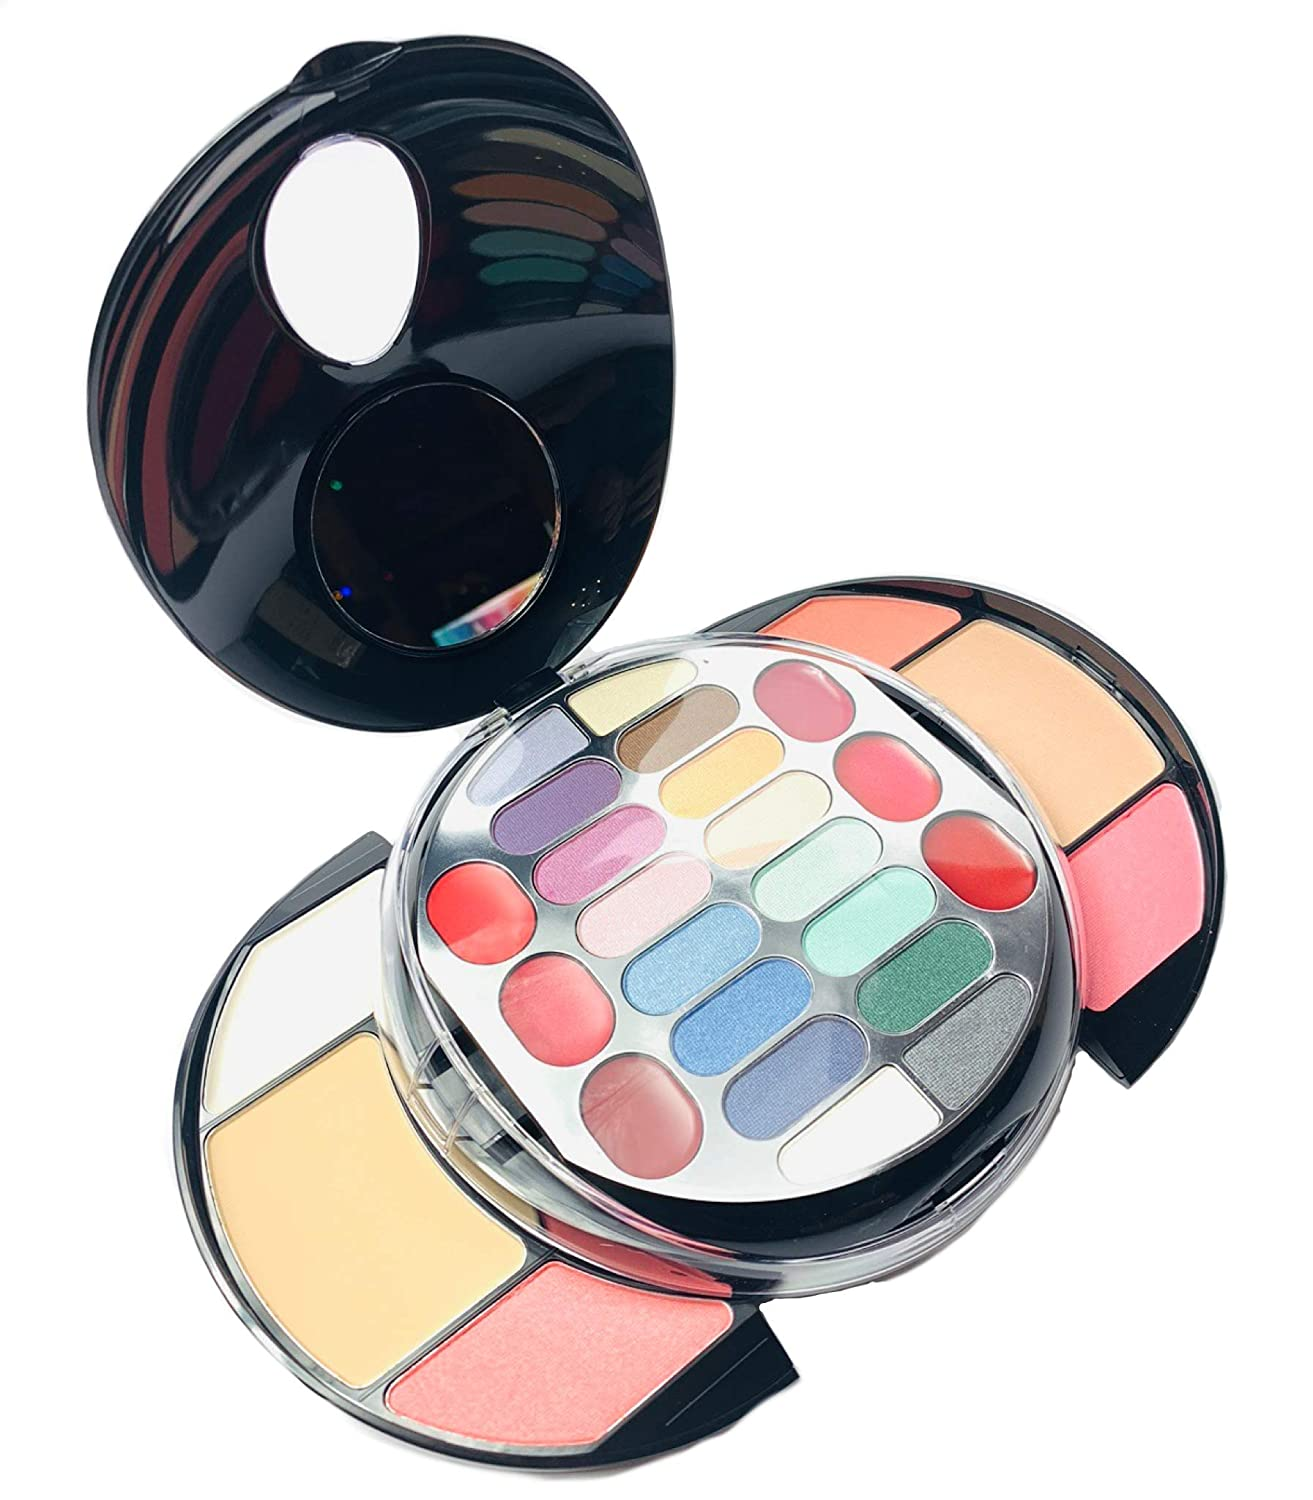 Deluxe makeup kit – All in one